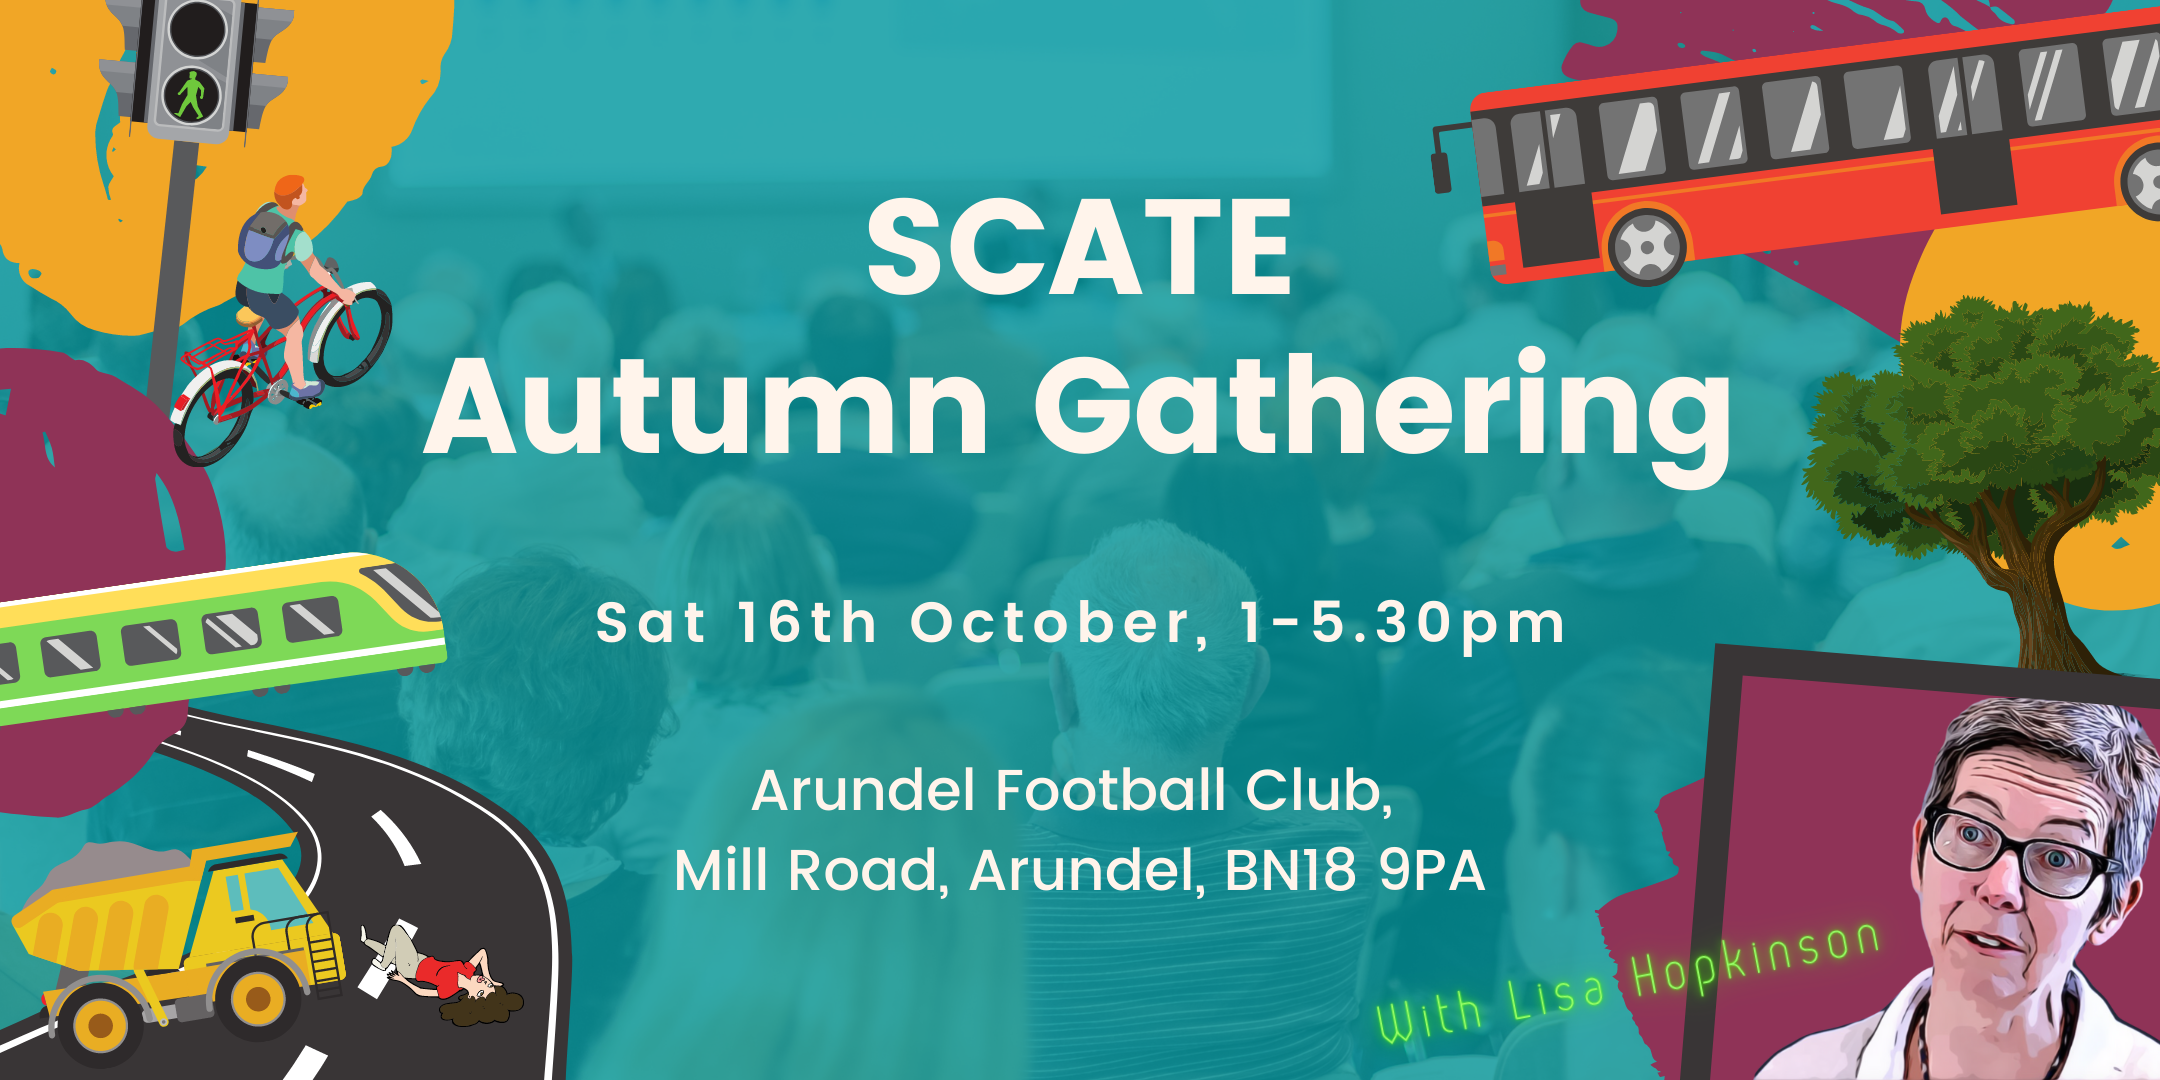 SCATE Autumn Gathering information and SIGN UP! Saturday 16th October